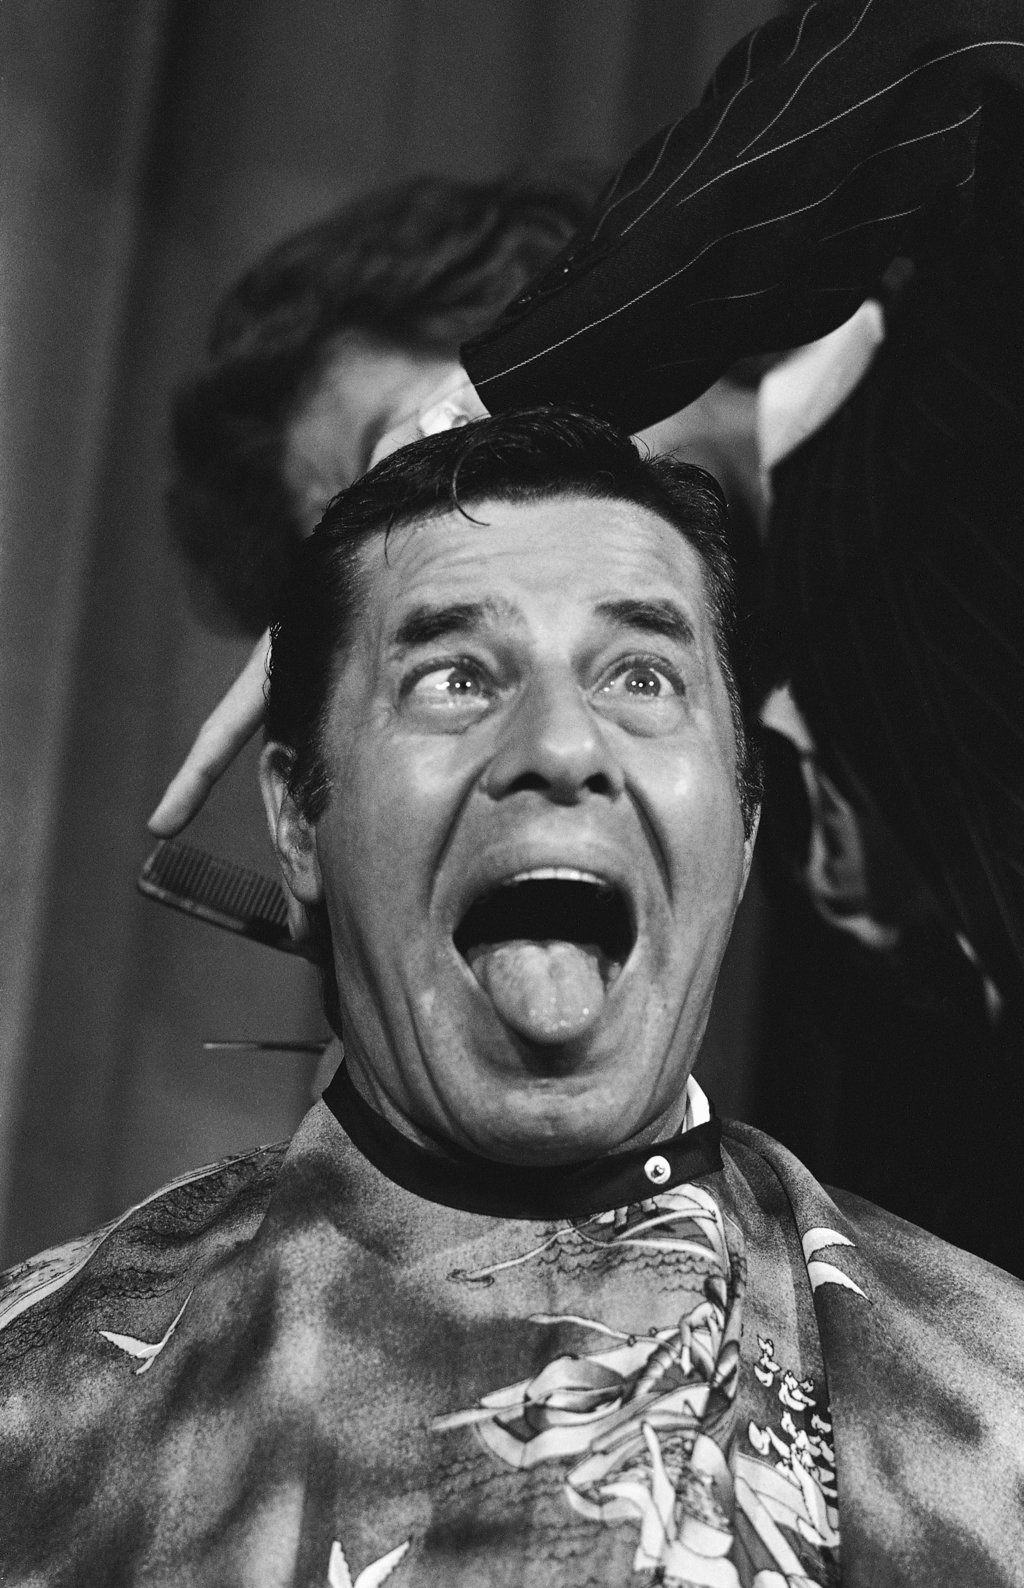 FILE - In a Oct. 16, 1977 file photo, comedian Jerry Lewis cuts up during a haircut for the Muscular Dystrophy Association. Lewis was given a $250,000...